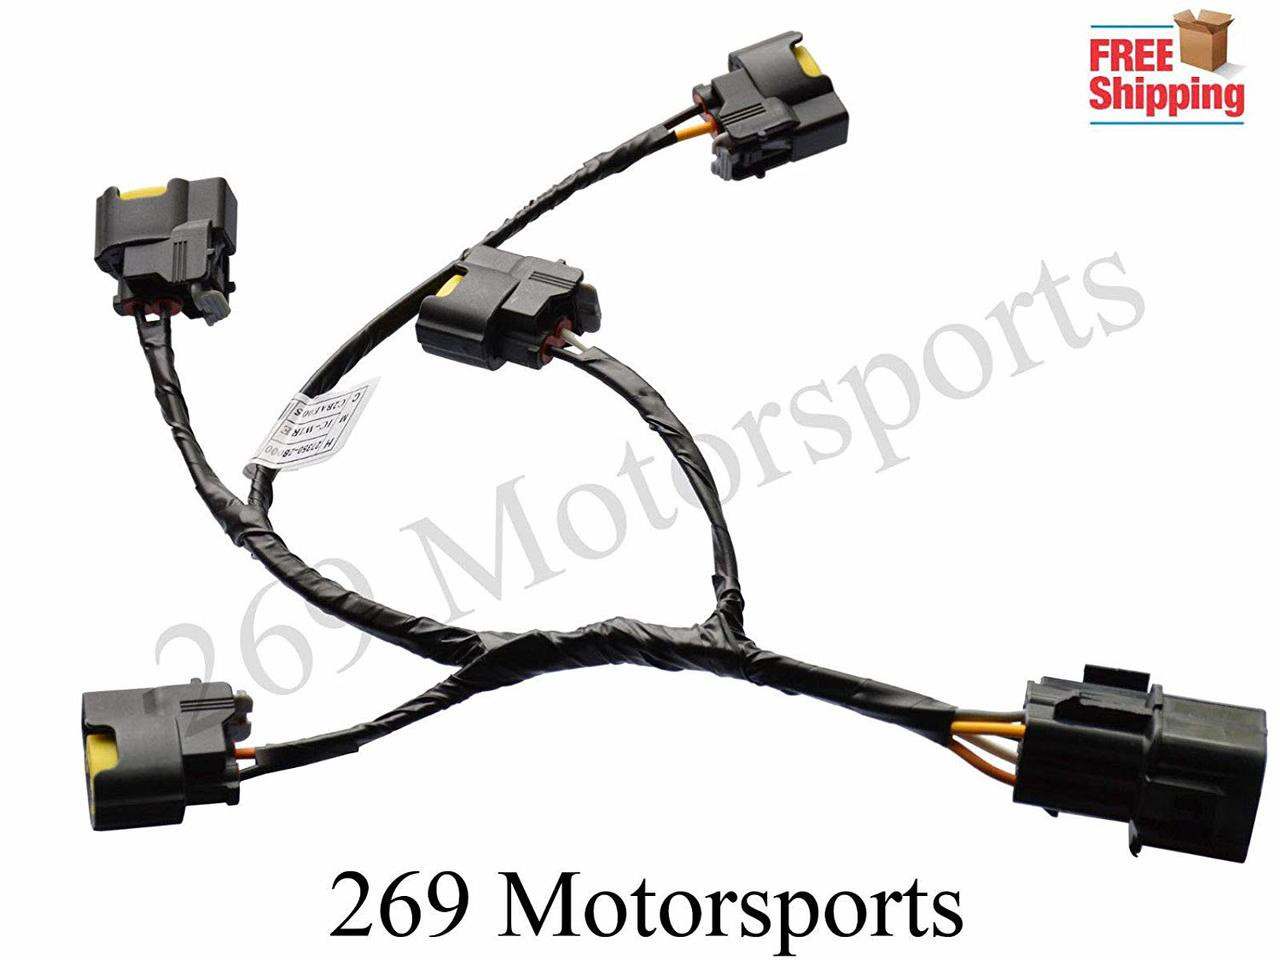 hight resolution of ignition coil wire harness for 10 14 veloster rio soul 1 6l replaces 27350 2b000